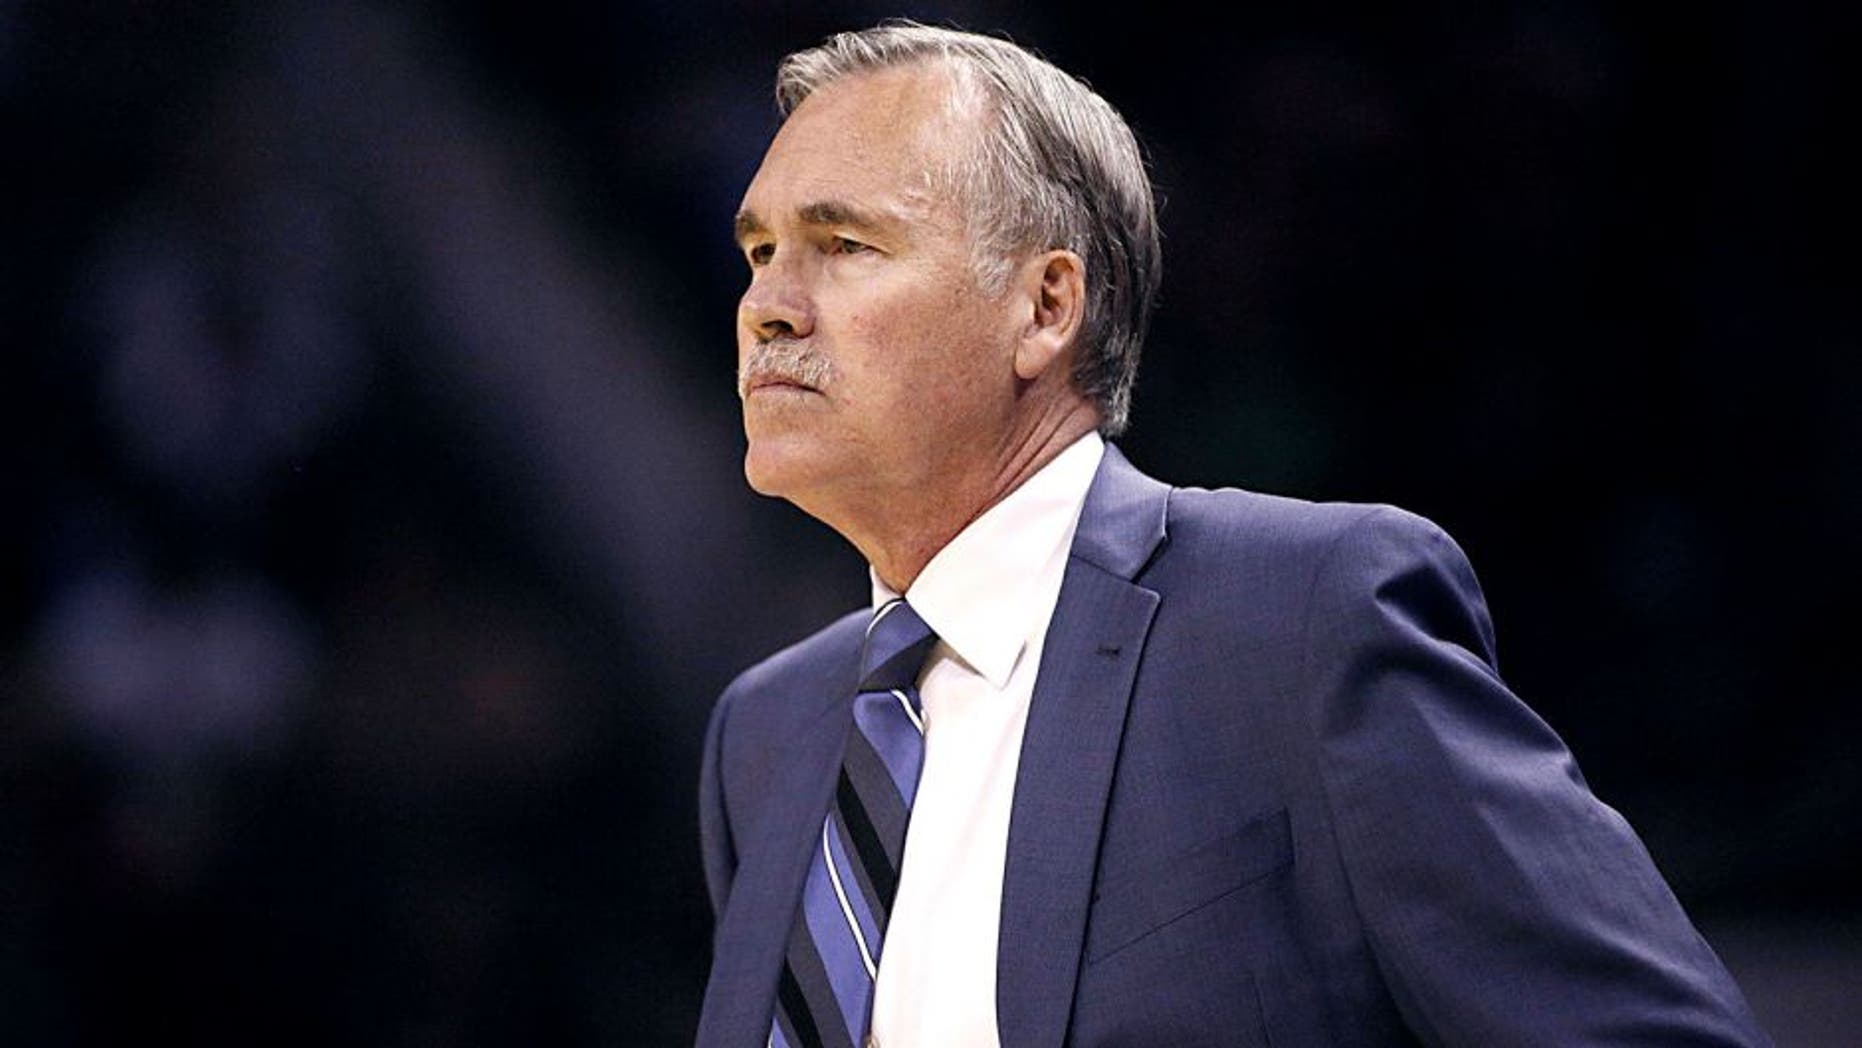 Mar 14, 2014; San Antonio, TX, USA; Los Angeles Lakers head coach Mike D'Antoni watches from the sideline against the San Antonio Spurs during the first half at AT&T Center. Mandatory Credit: Soobum Im-USA TODAY Sports